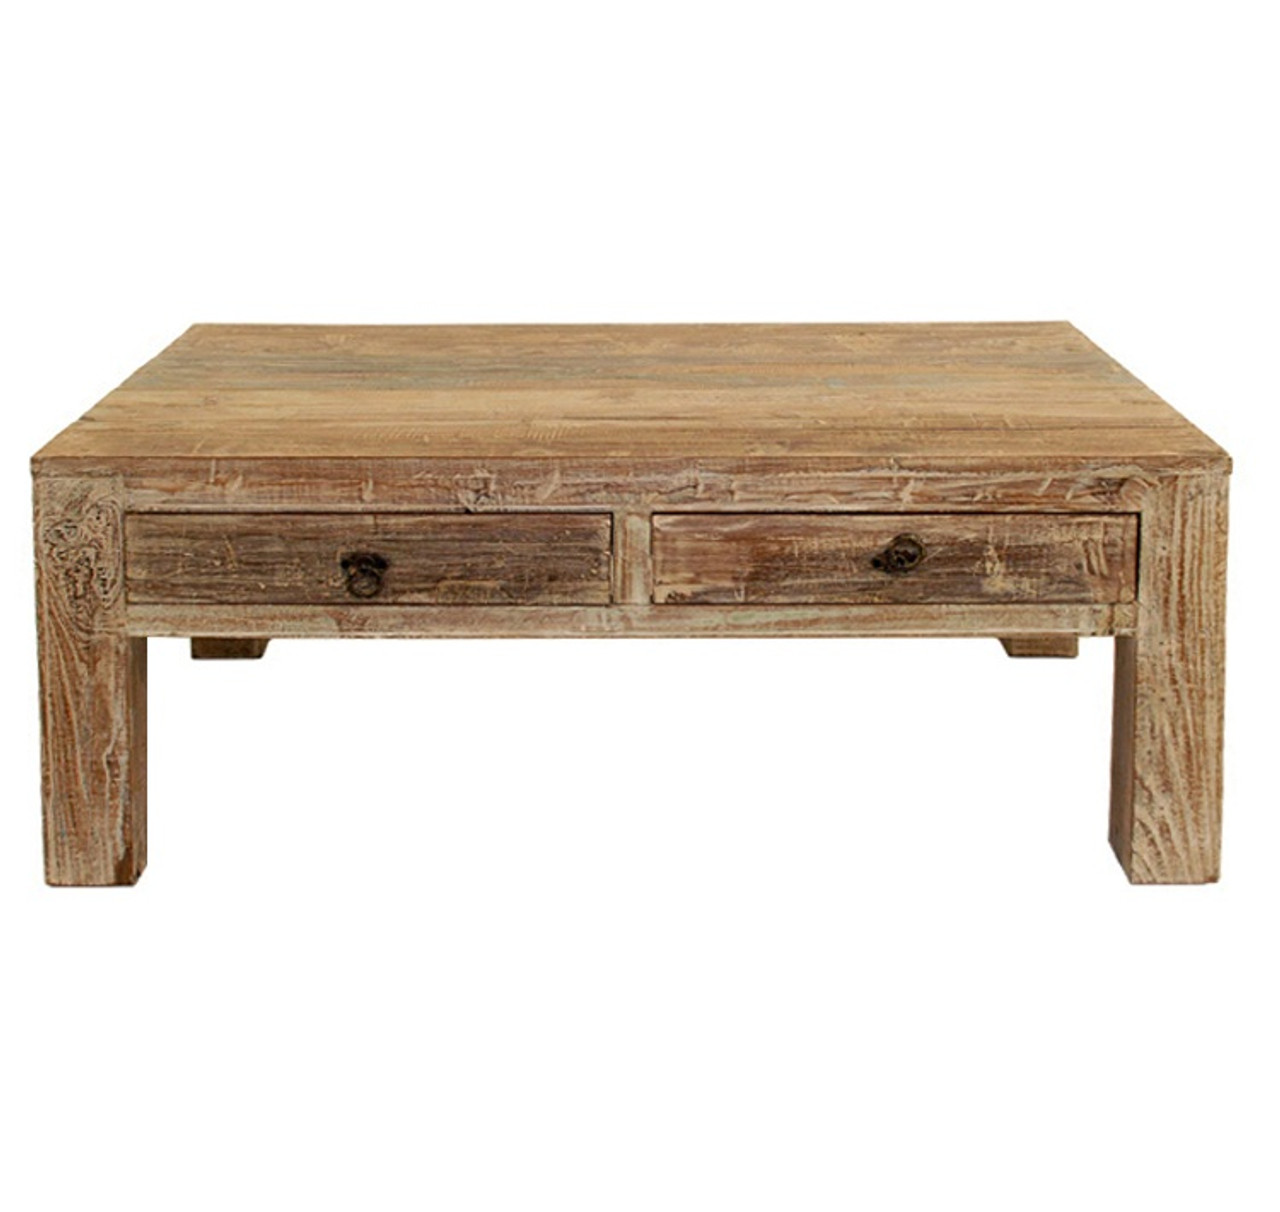 Hampton reclaimed wood coffee table with 2 drawers zin home for Reclaimed teak wood coffee table